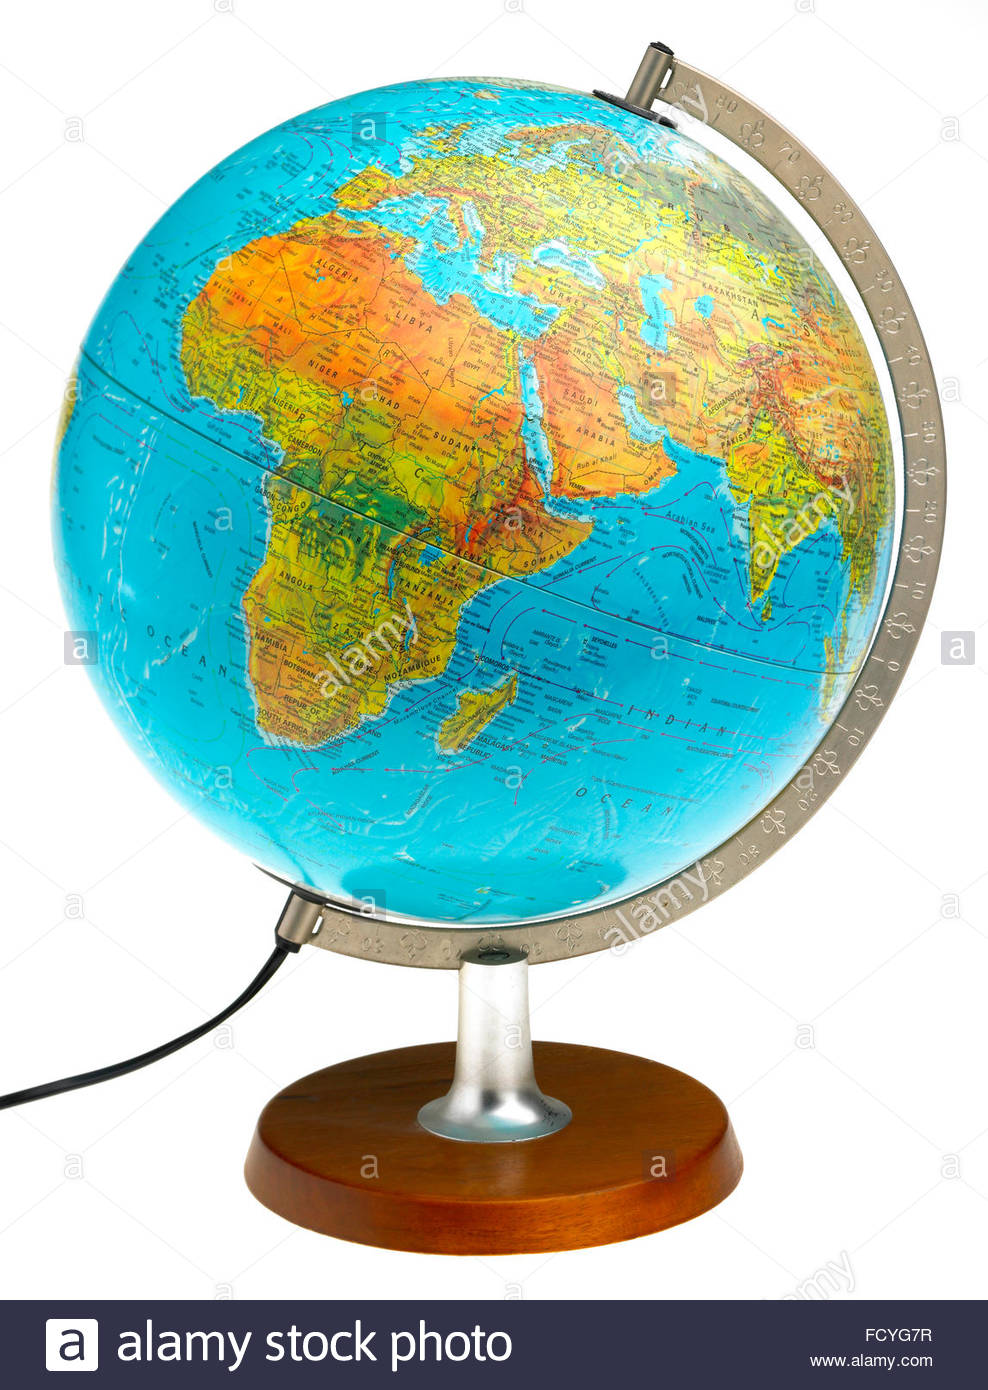 World whole globe illuminated map plastic and translucent world whole globe illuminated map plastic and translucent showing the equator europe and gumiabroncs Gallery